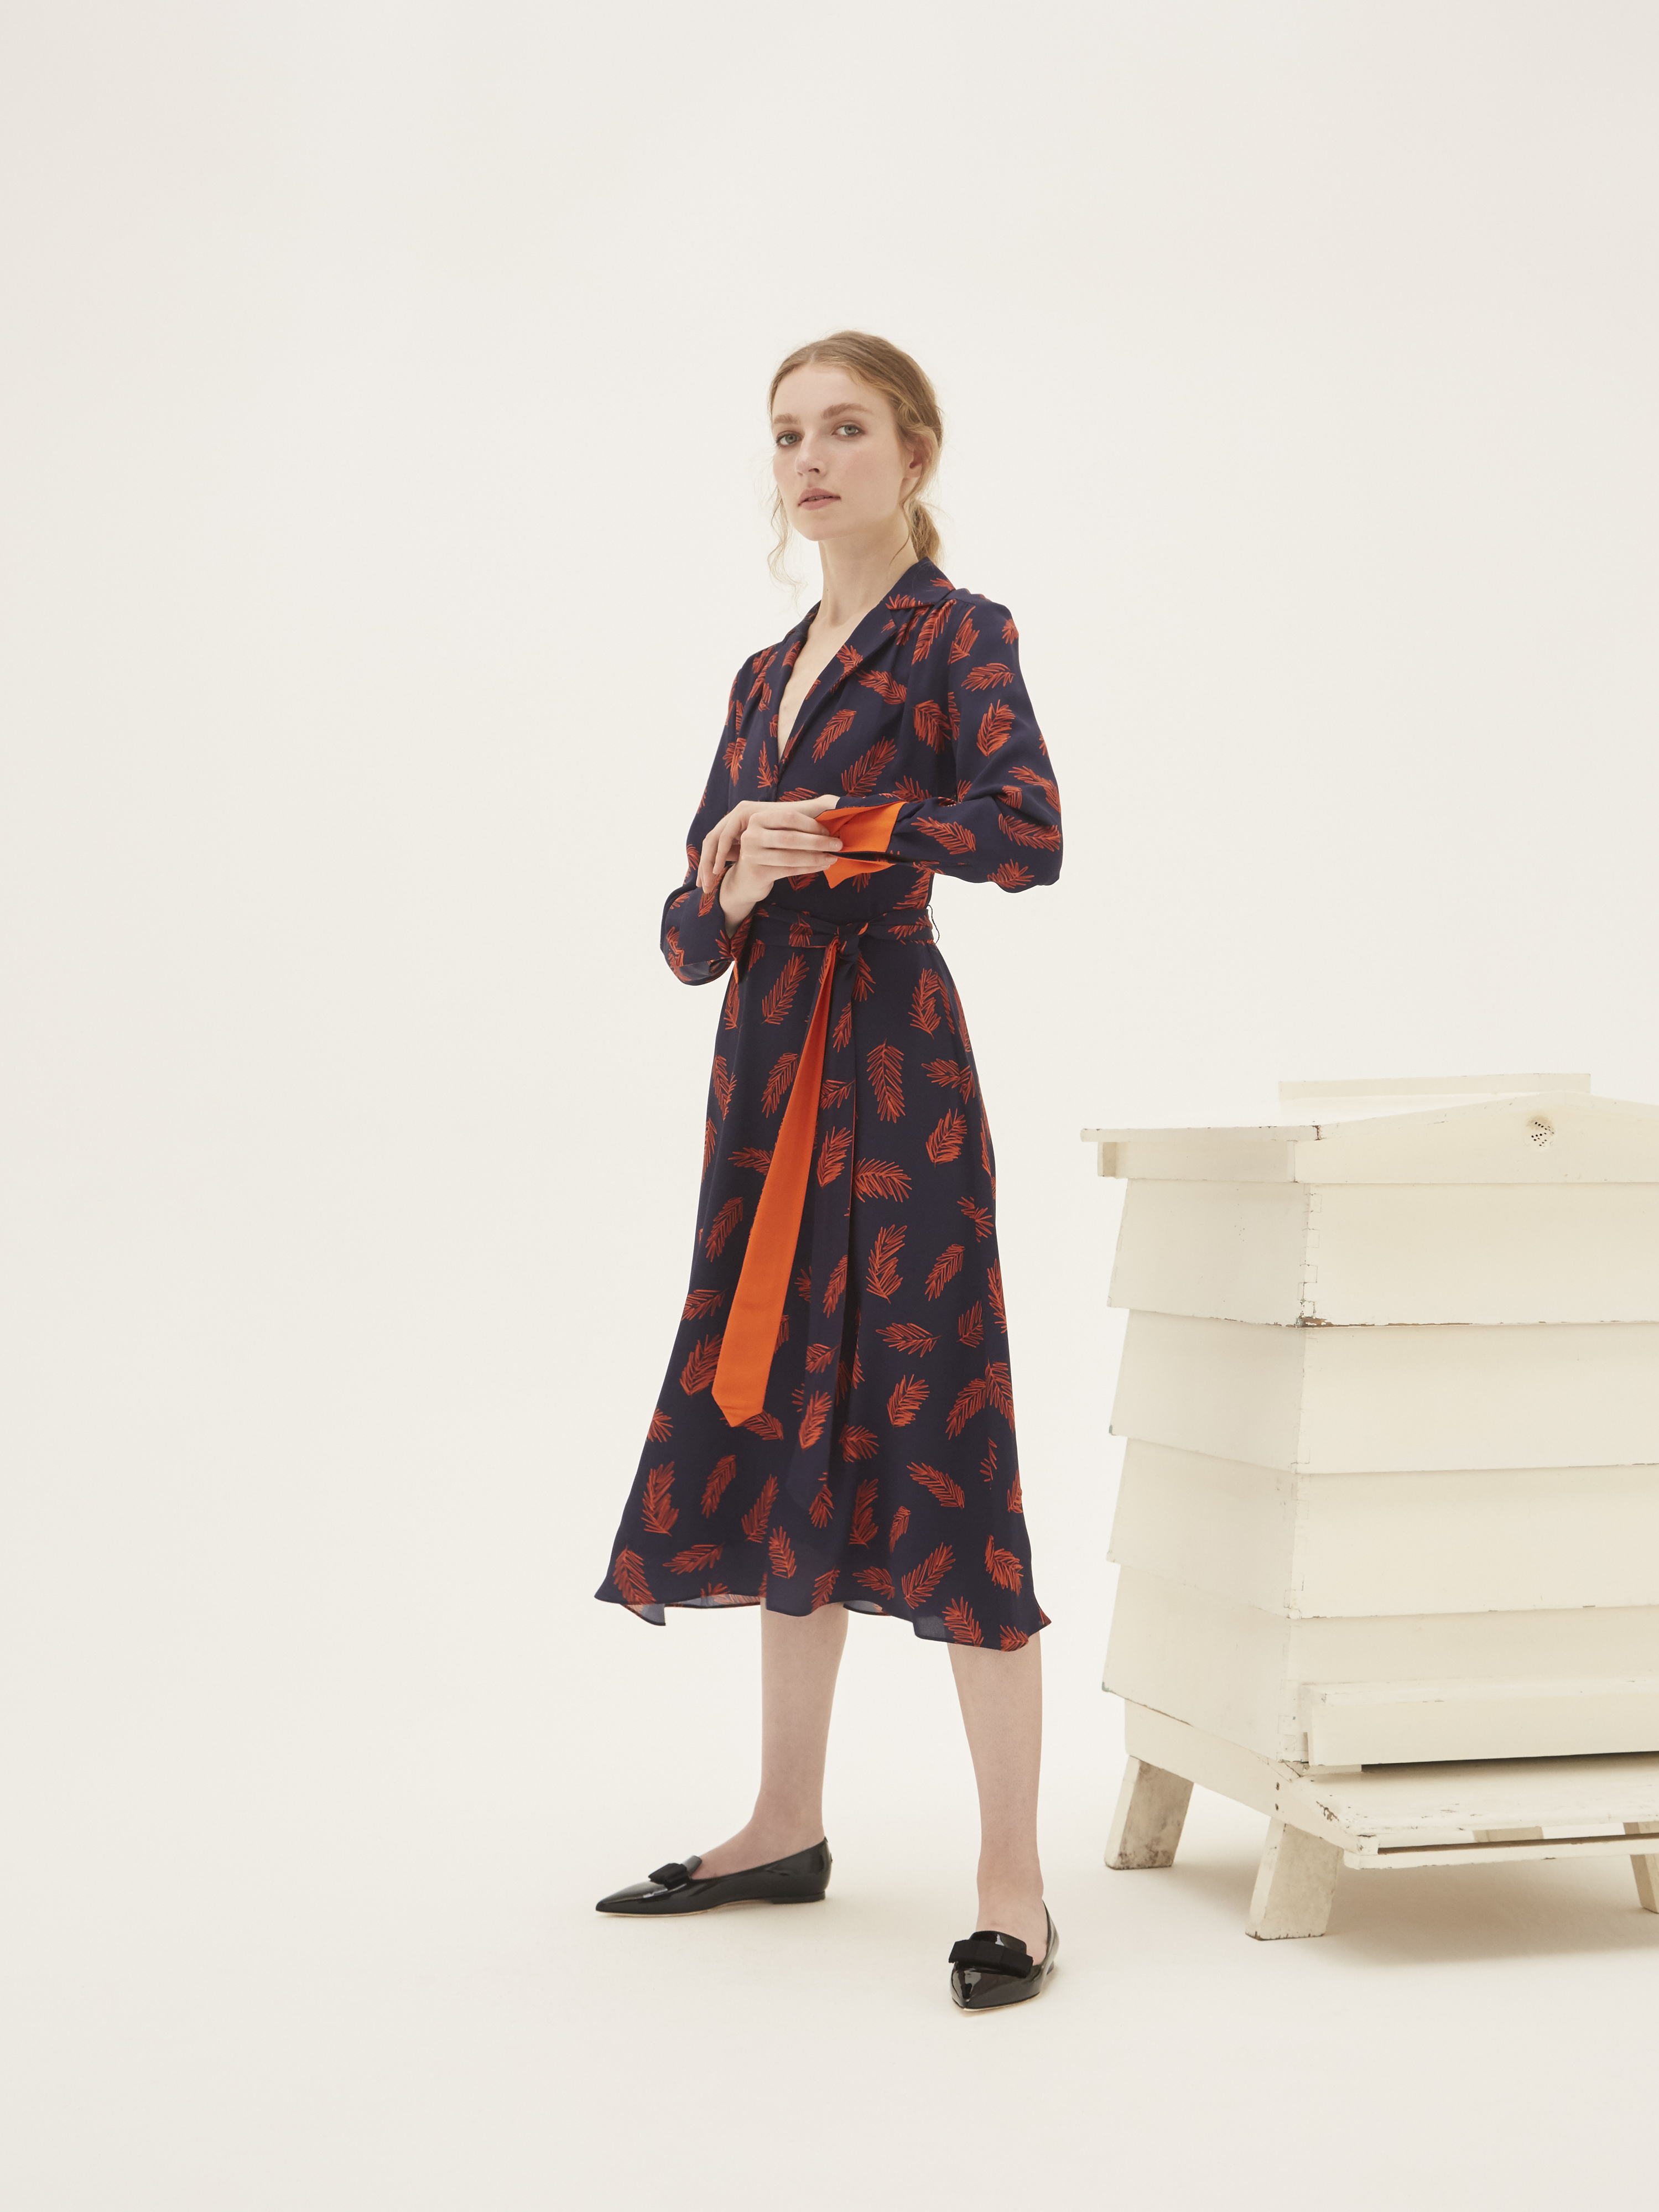 Setae Dress by Bozena Jankowska on curated-crowd.com